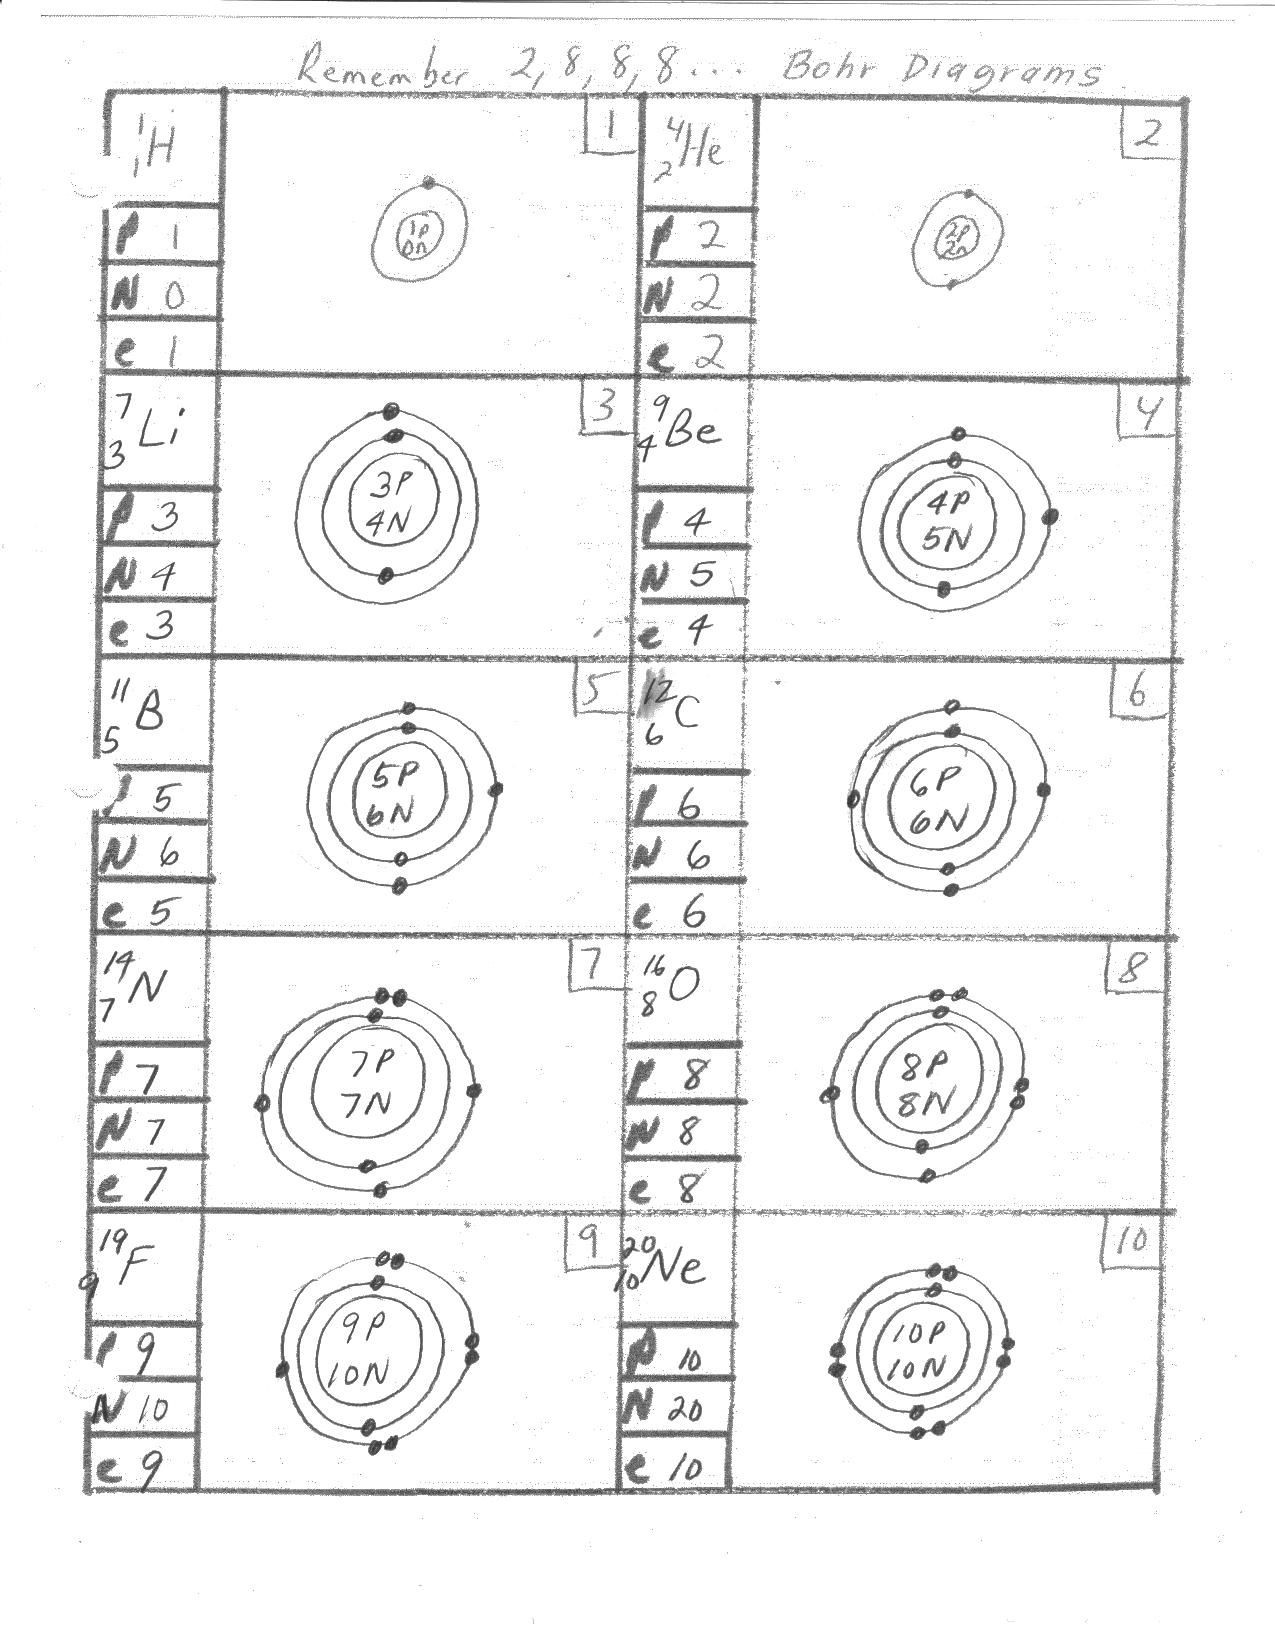 Bohr Model Worksheet Middle School Worksheets Bohr Model Worksheet Answers Pureluckrestaurant